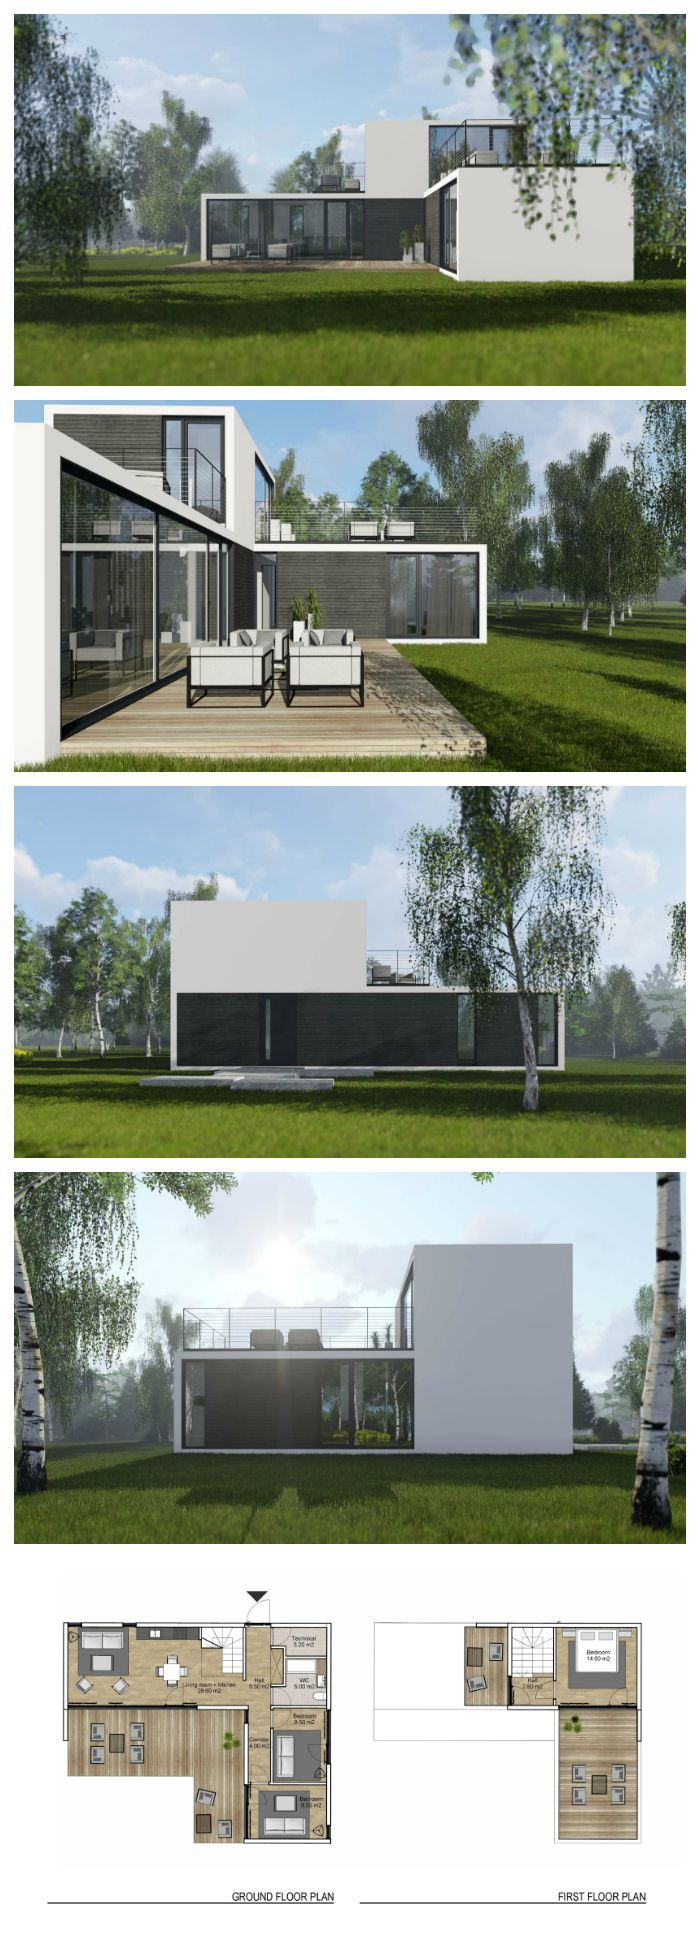 Nordic light -  modern 90 m2 prefabricated house manufactured by Compact living Nordic, designed by NG architects